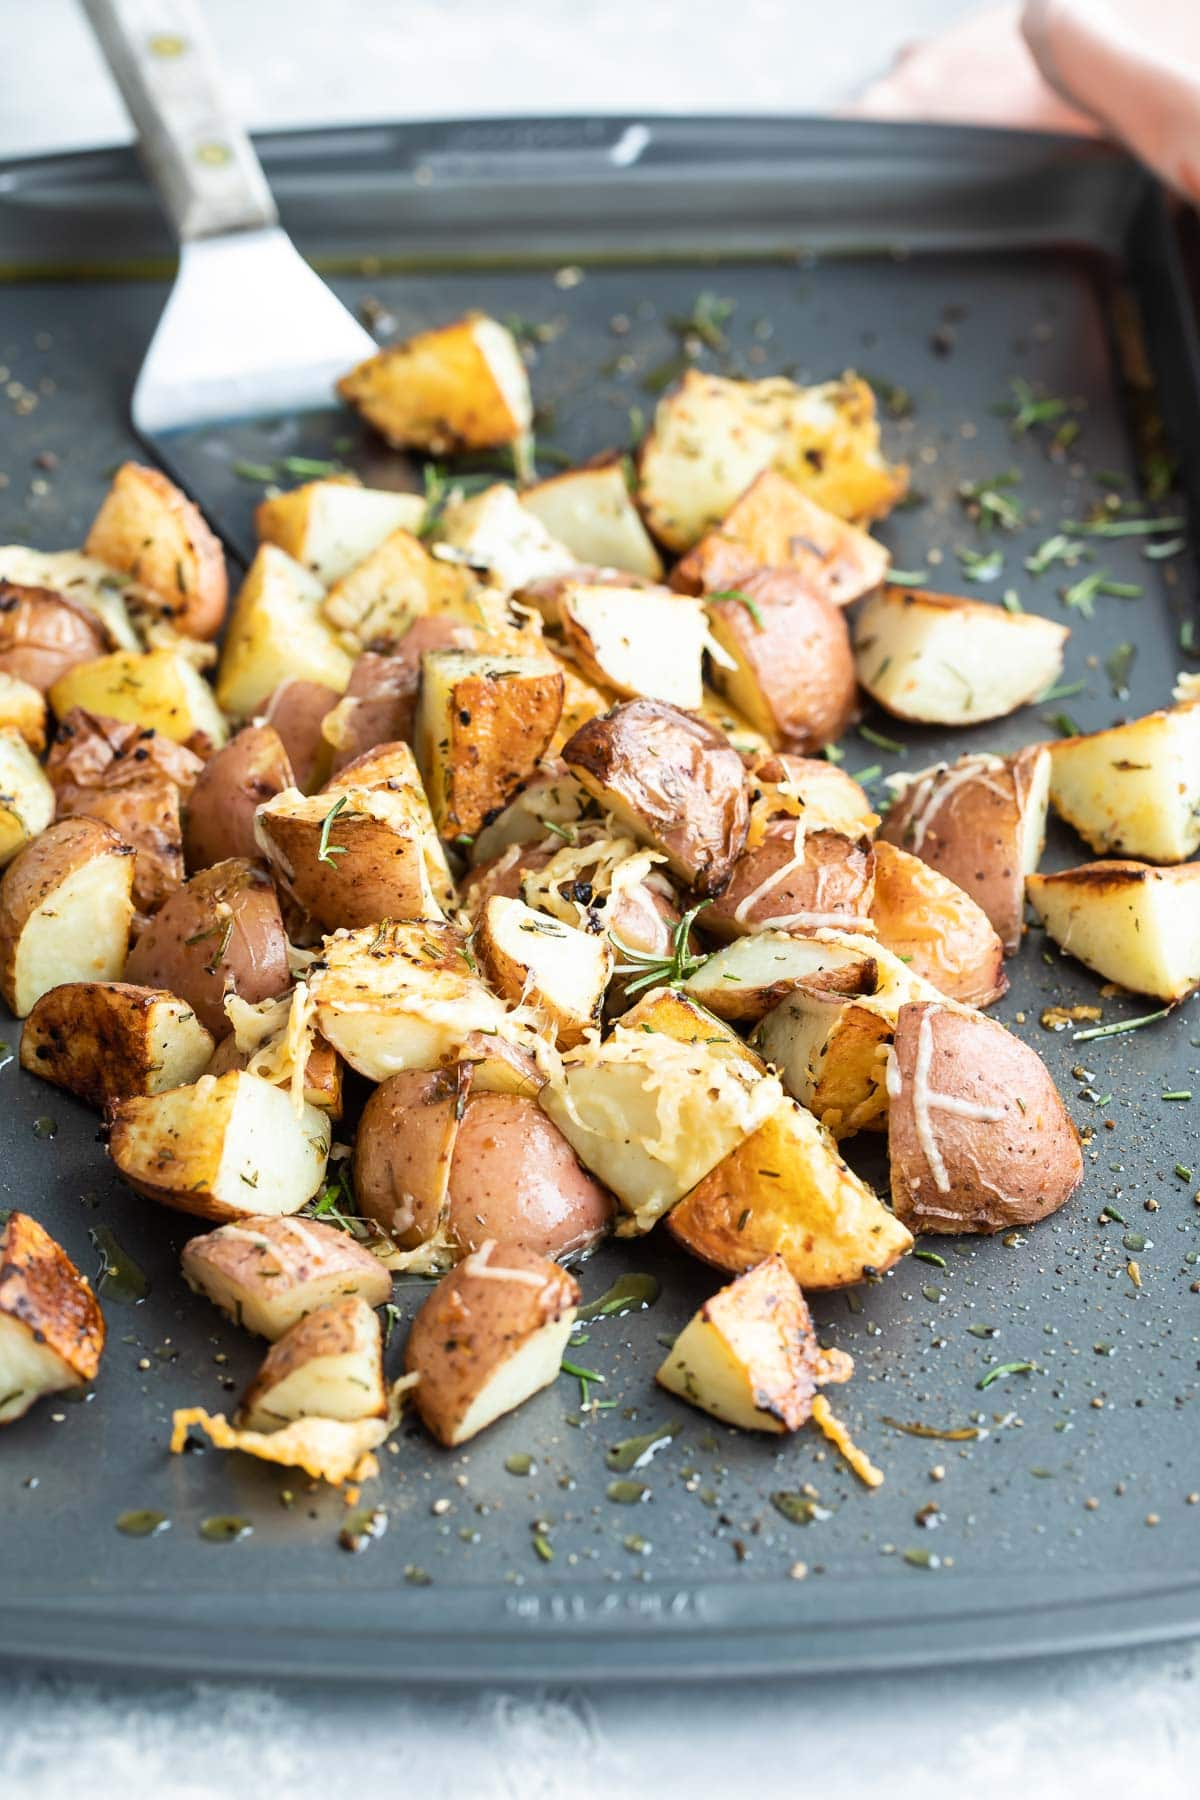 Roasted rosemary potatoes on a silver baking sheet.